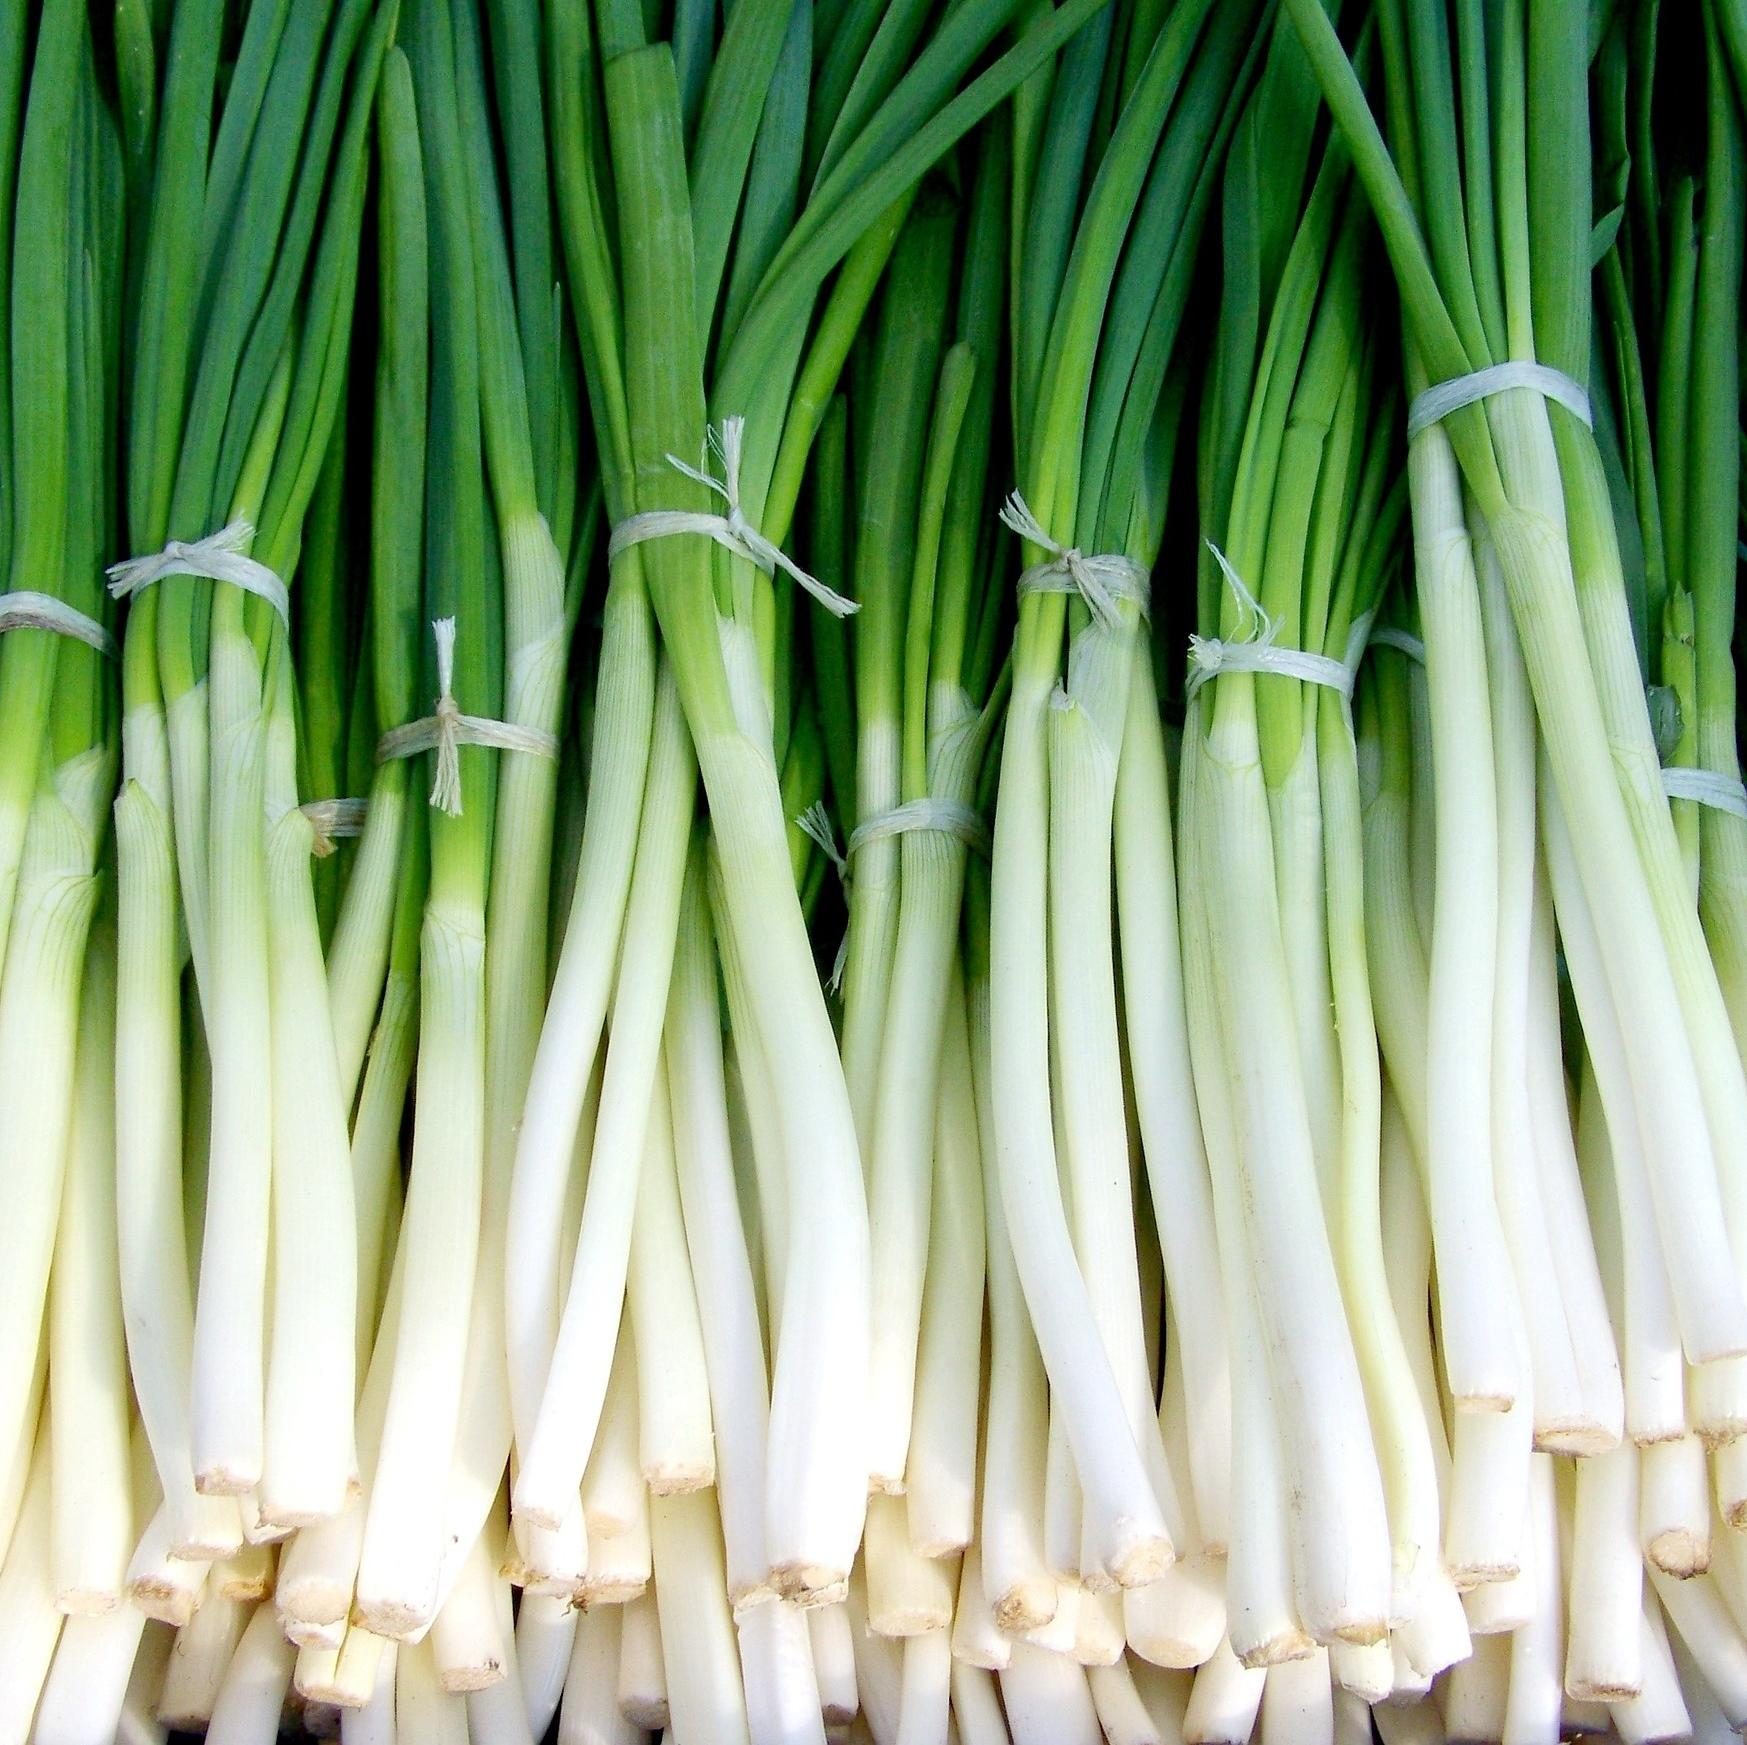 One bunch of Spring Onions